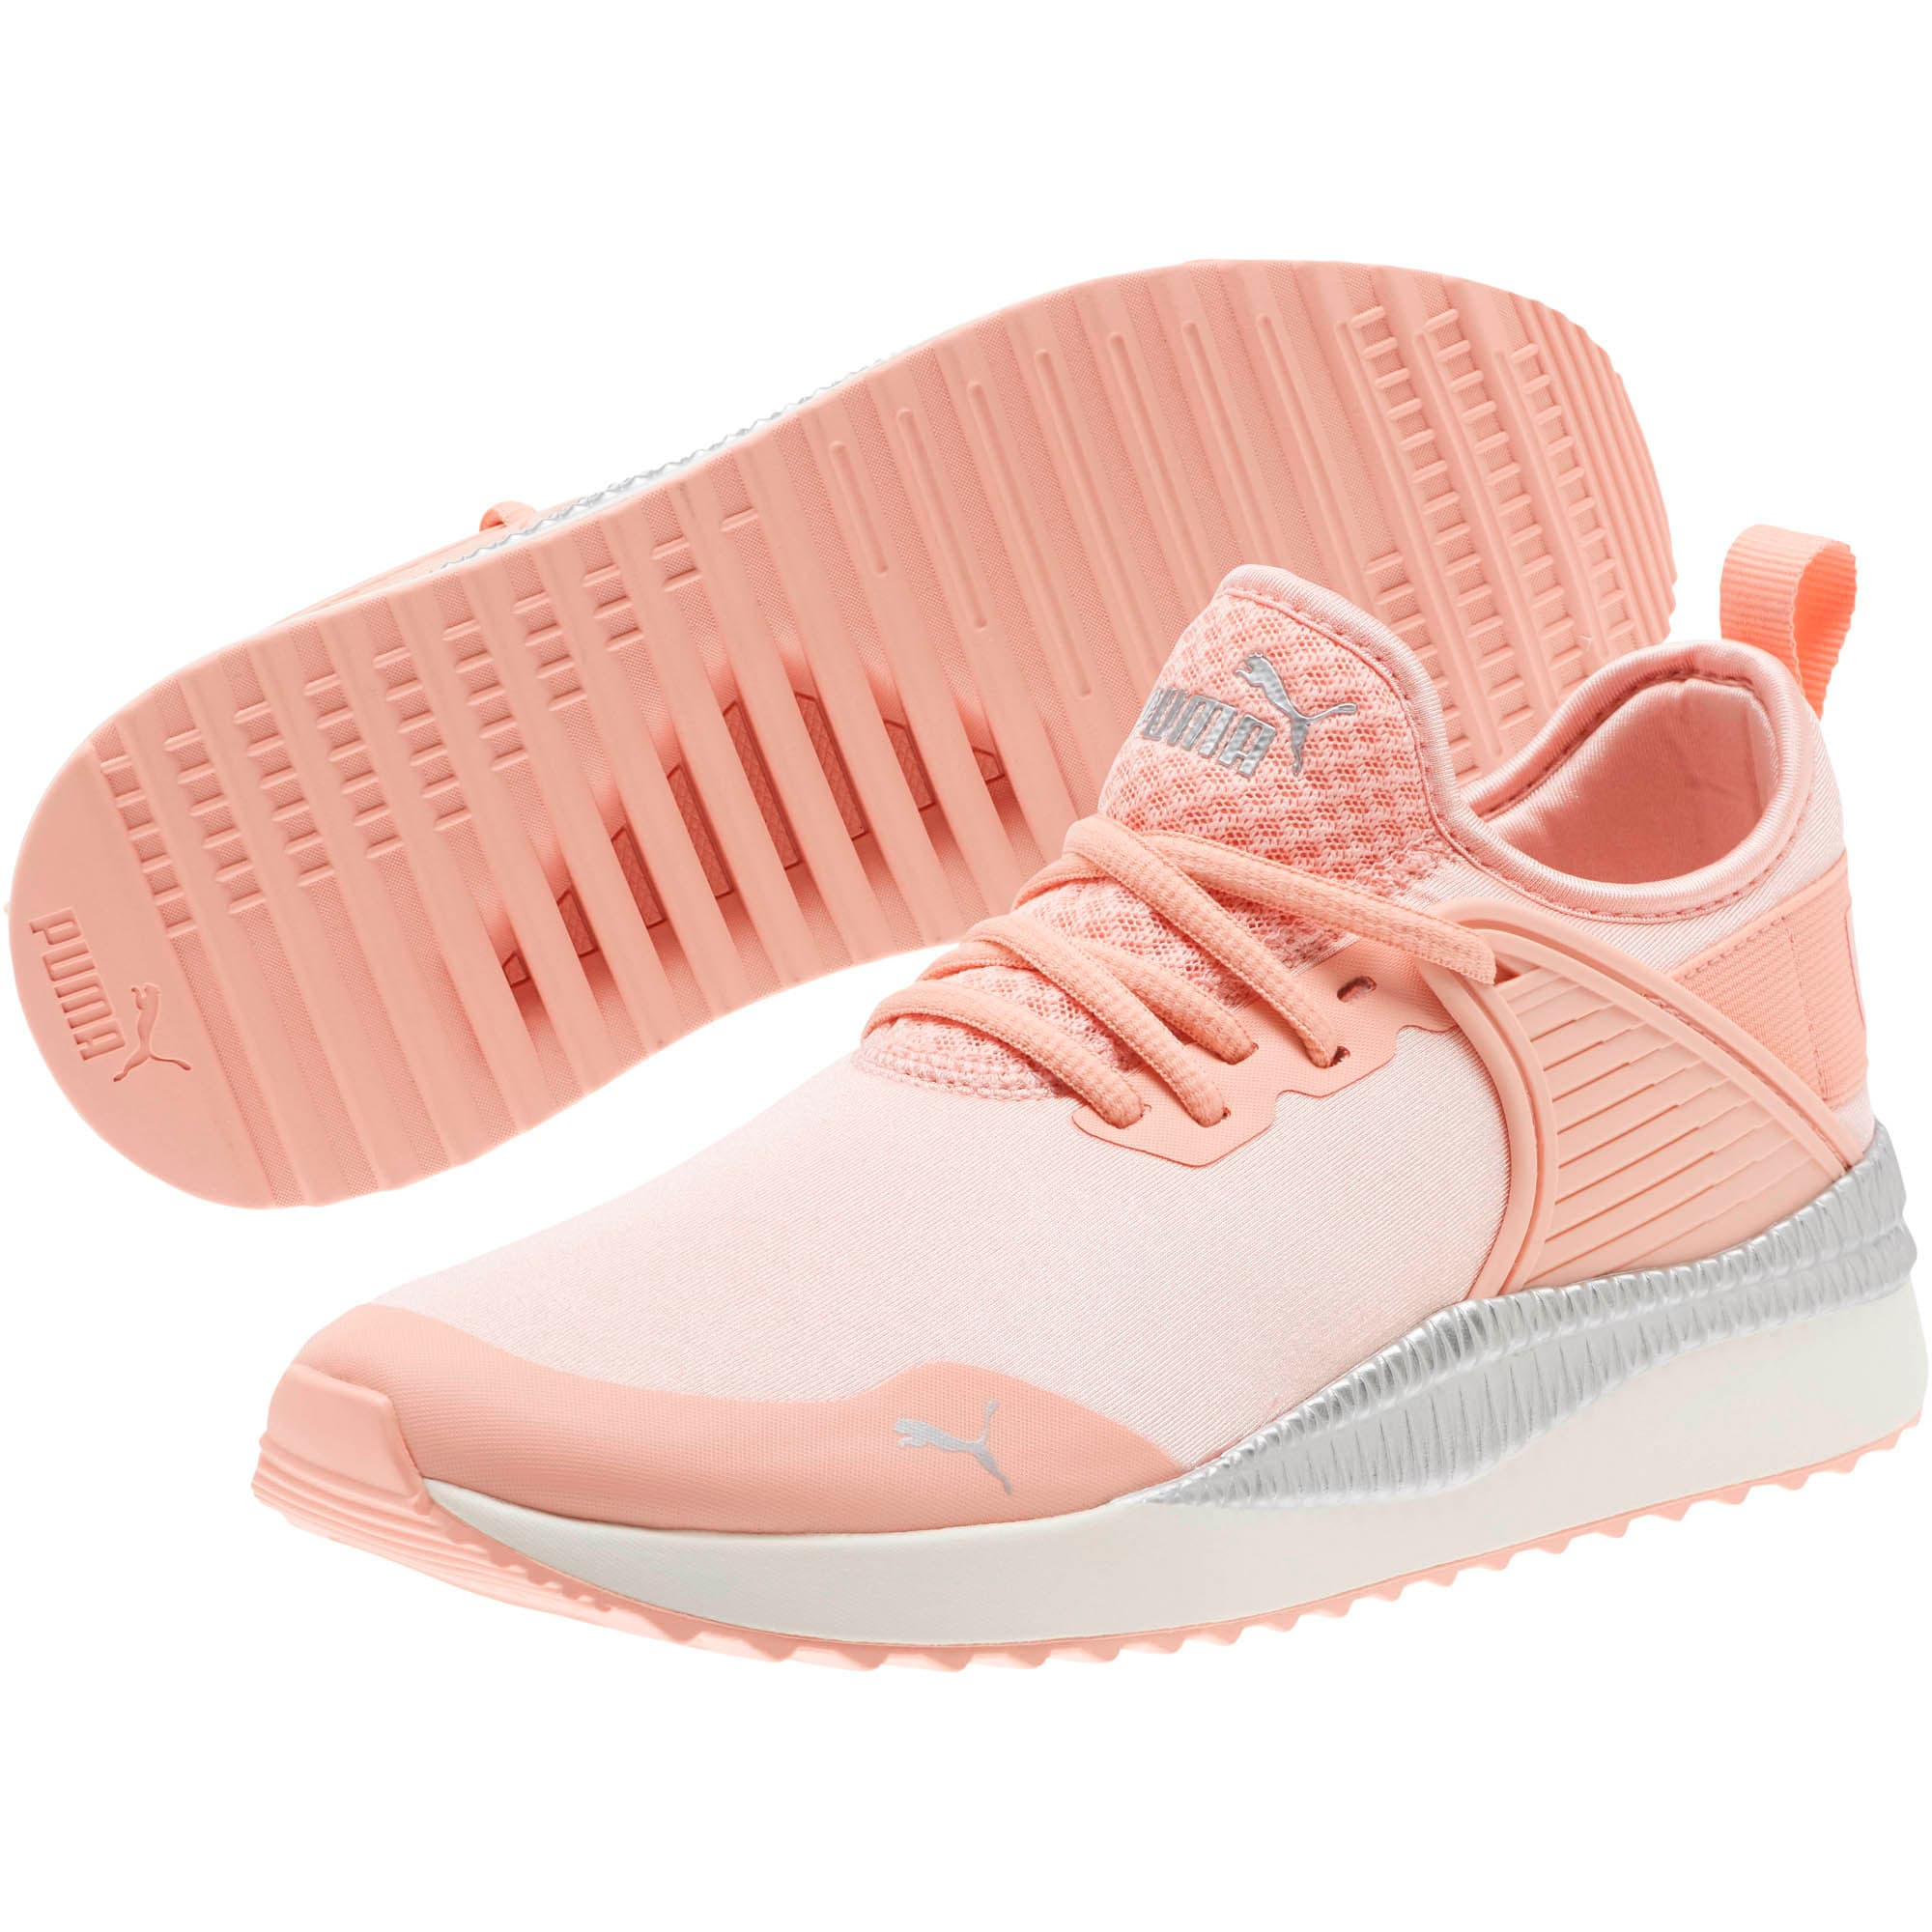 Thumbnail 2 of Pacer Next Cage ST2 Women's Sneakers, Peach Bud-Puma Silver, medium